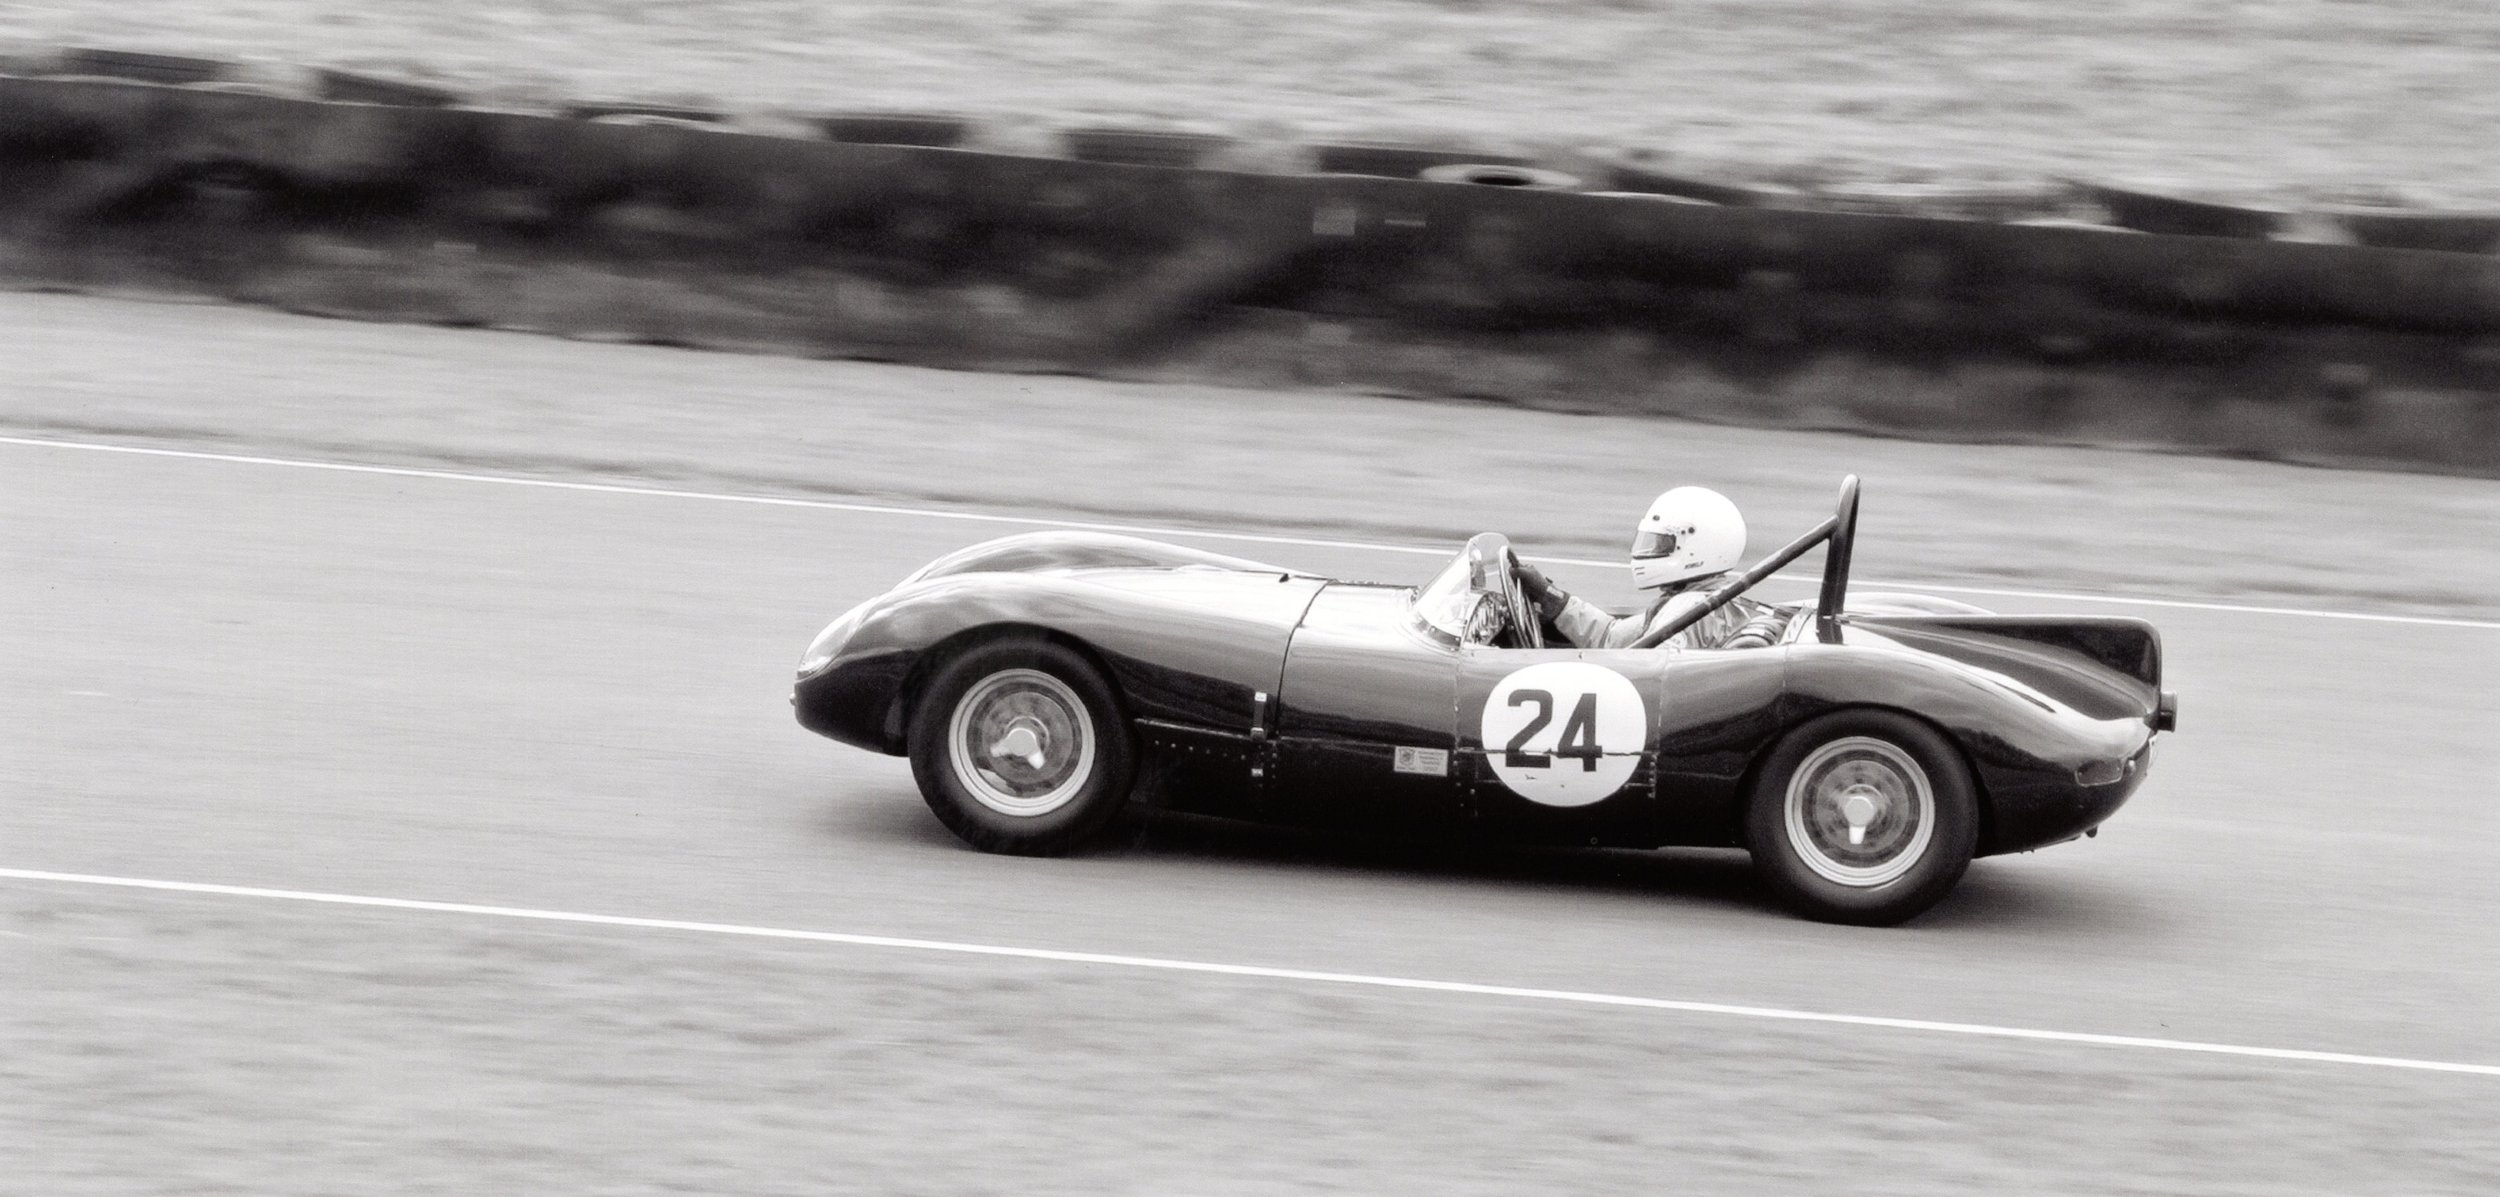 Playford MG in action at the Goodwood Revival